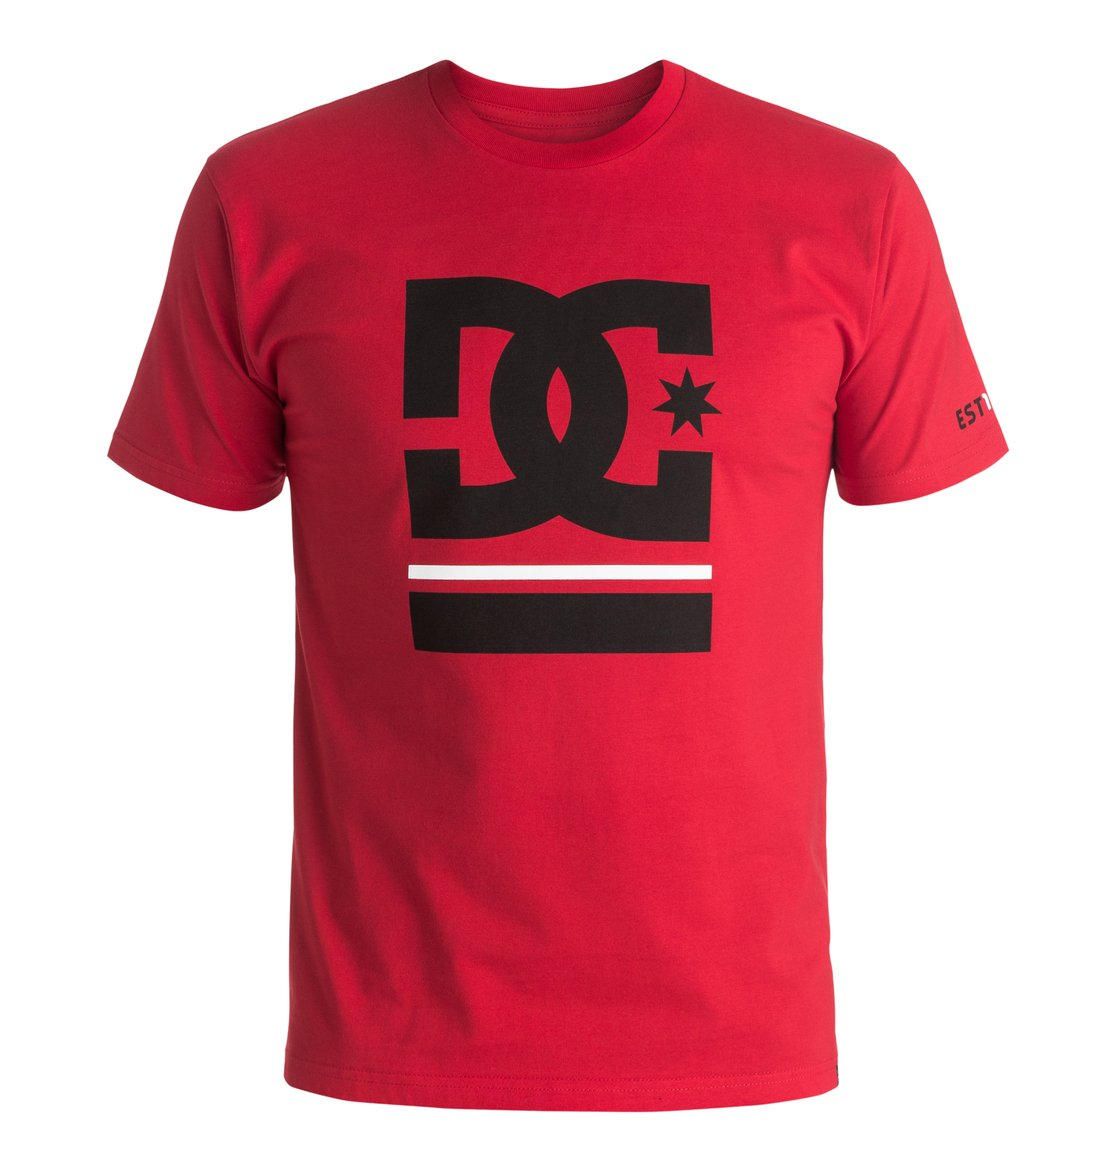 Men 39 s dc bar star tee adyzt03902 dc shoes for Dc t shirts online